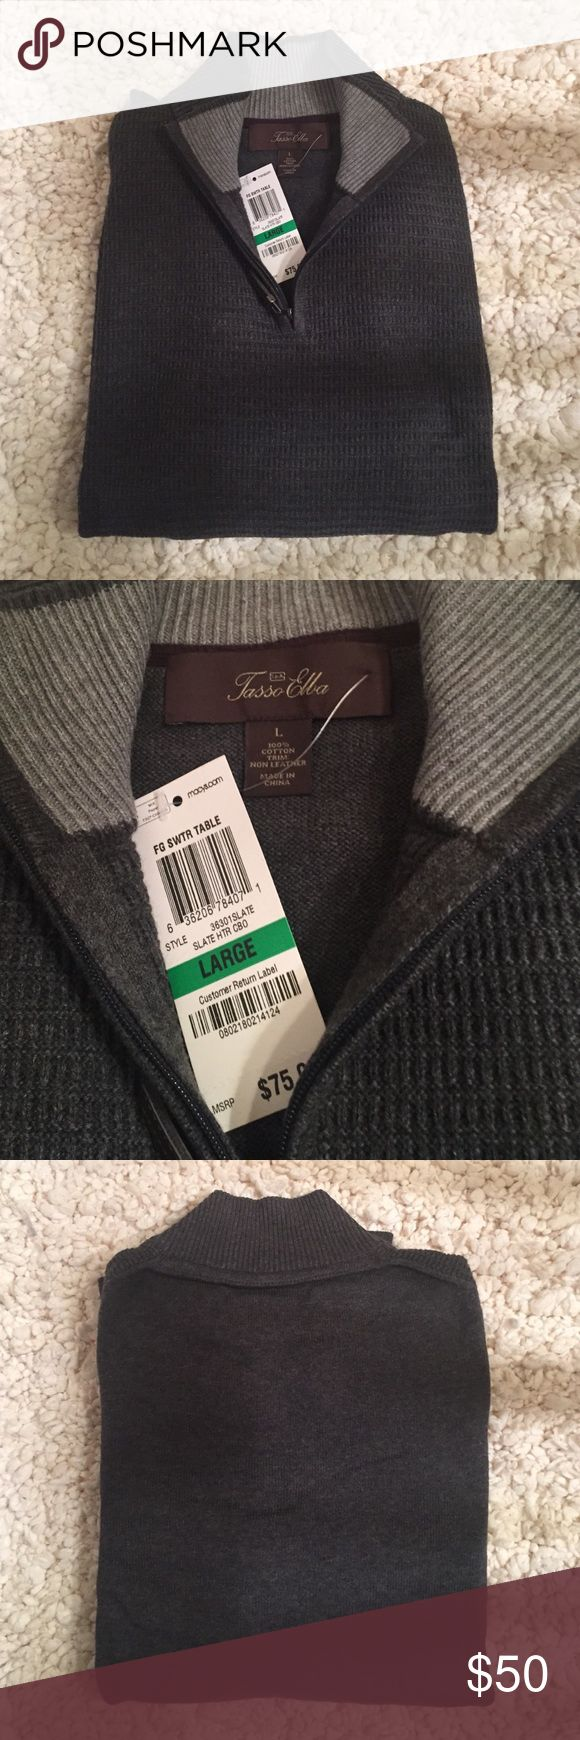 Men's dart Gray Tasso Ella half zip sweater Brand New! perfect Christmas gift for your husband, father, or son! 100% cotton. Tasso Elba Sweaters